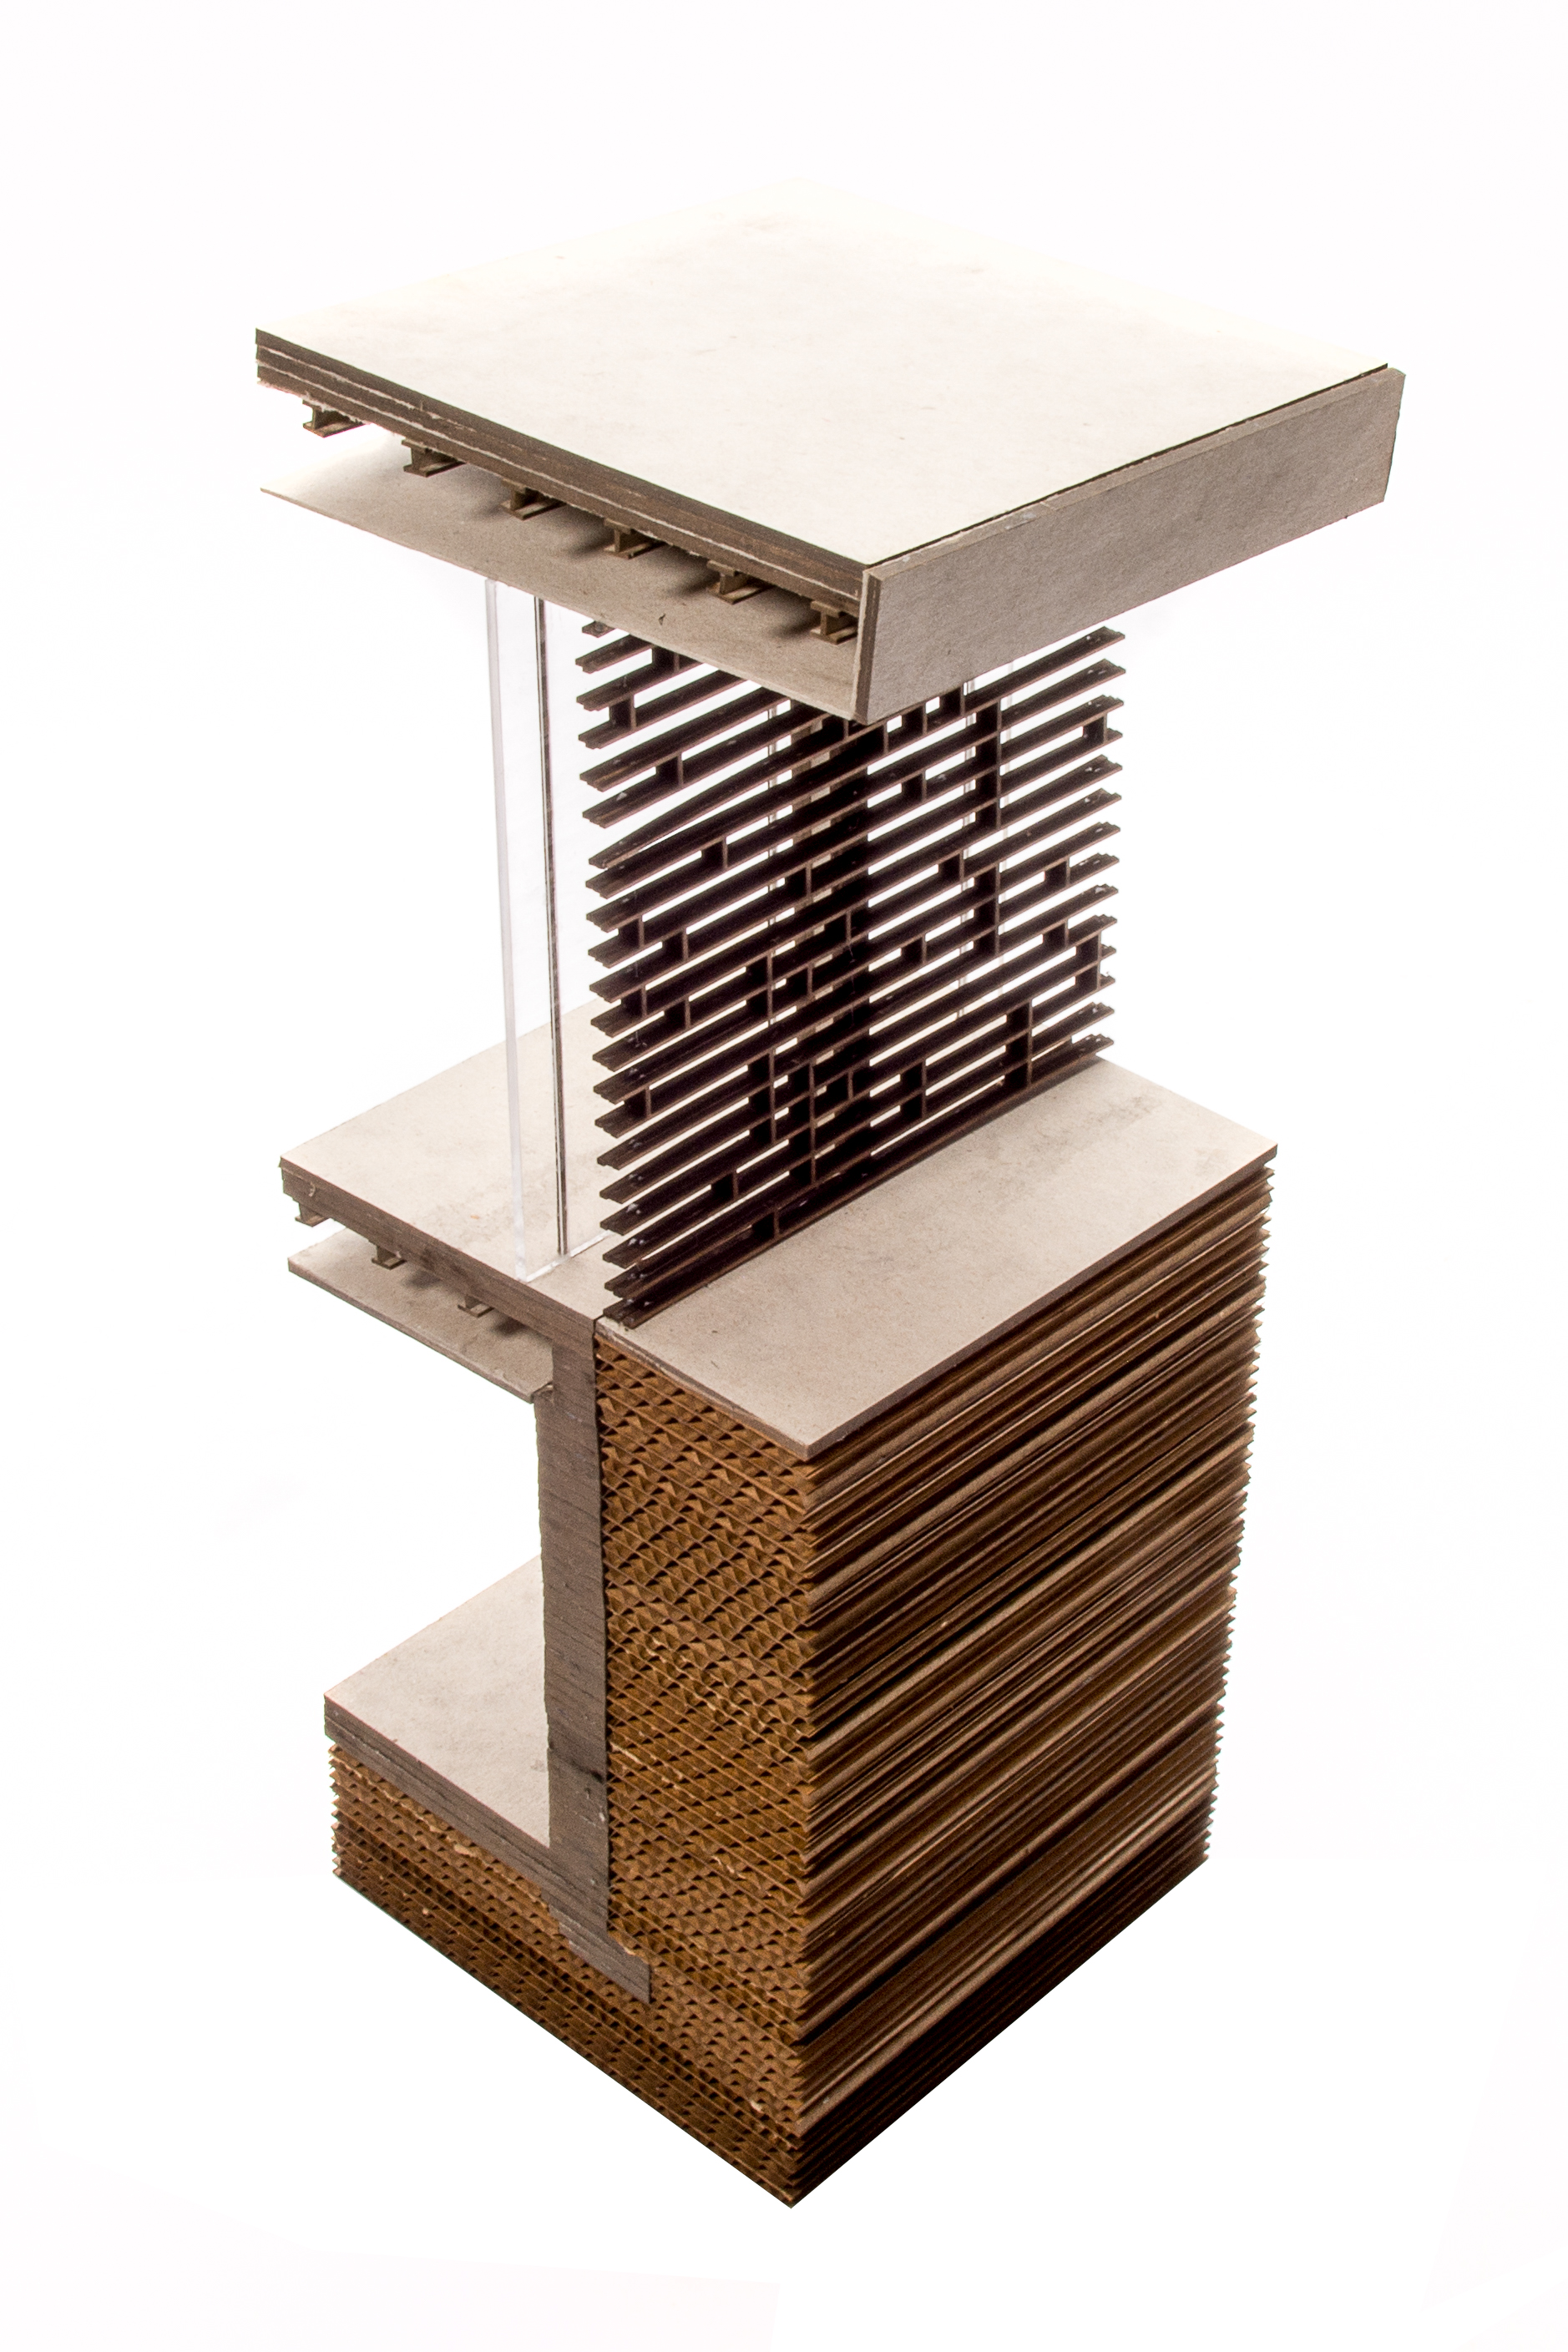 Wall section model showing steel framing and screen design